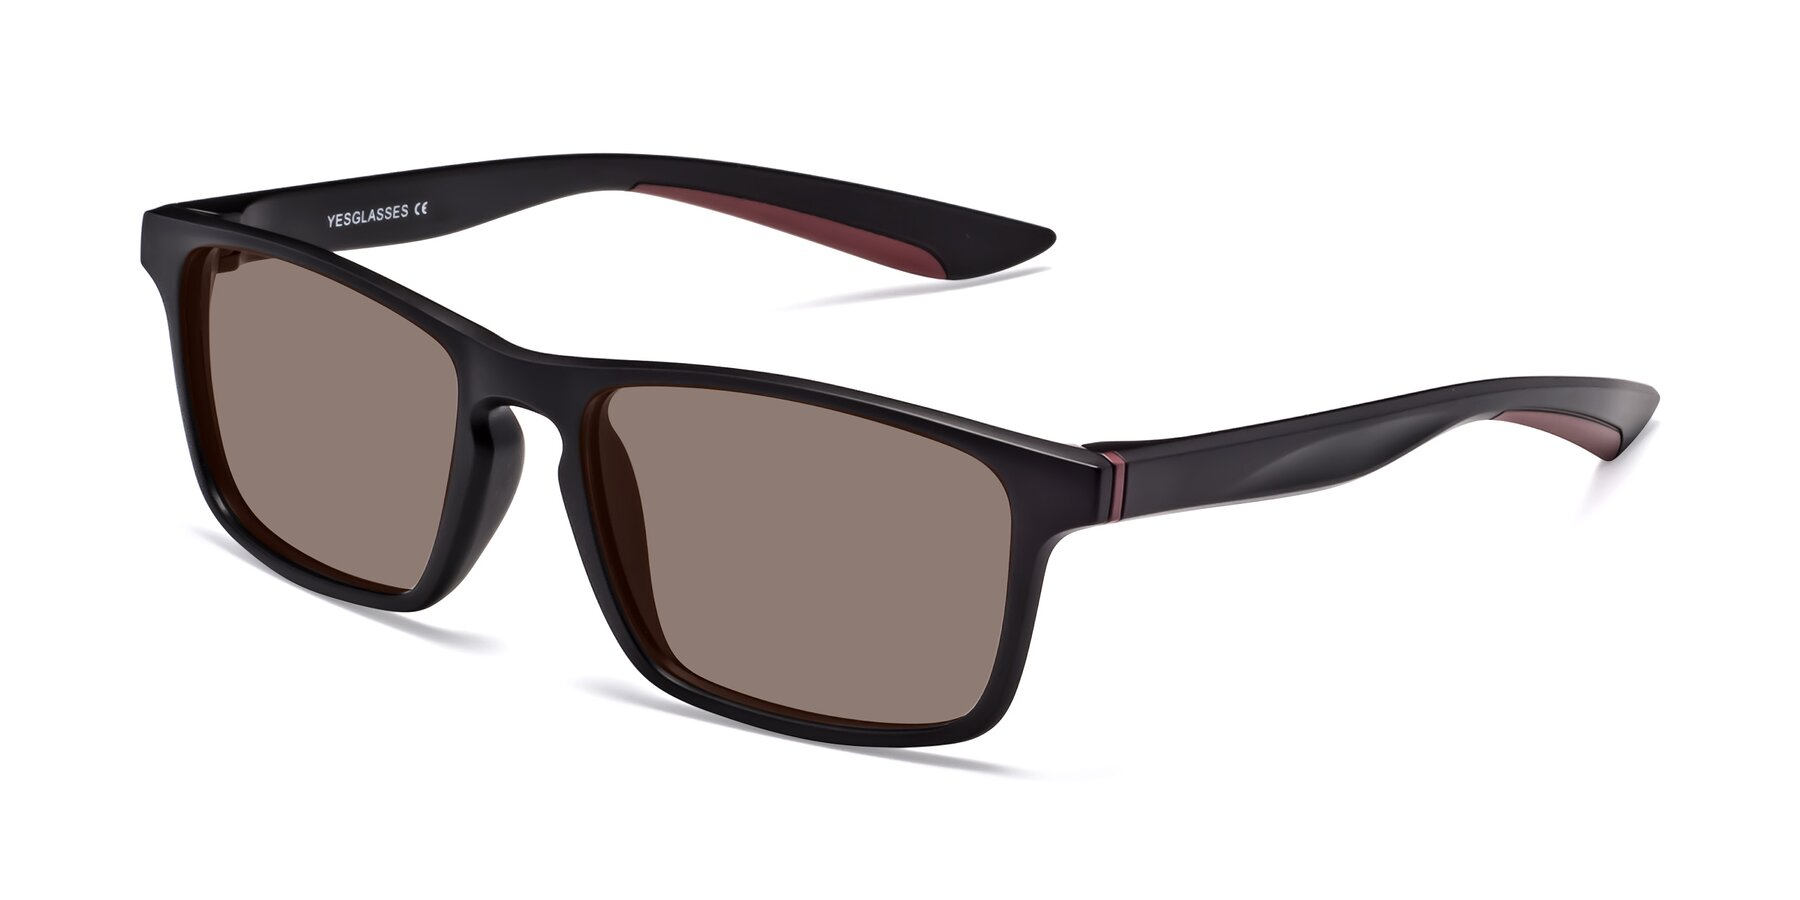 Angle of Passion in Matte Black-Wine with Medium Brown Tinted Lenses